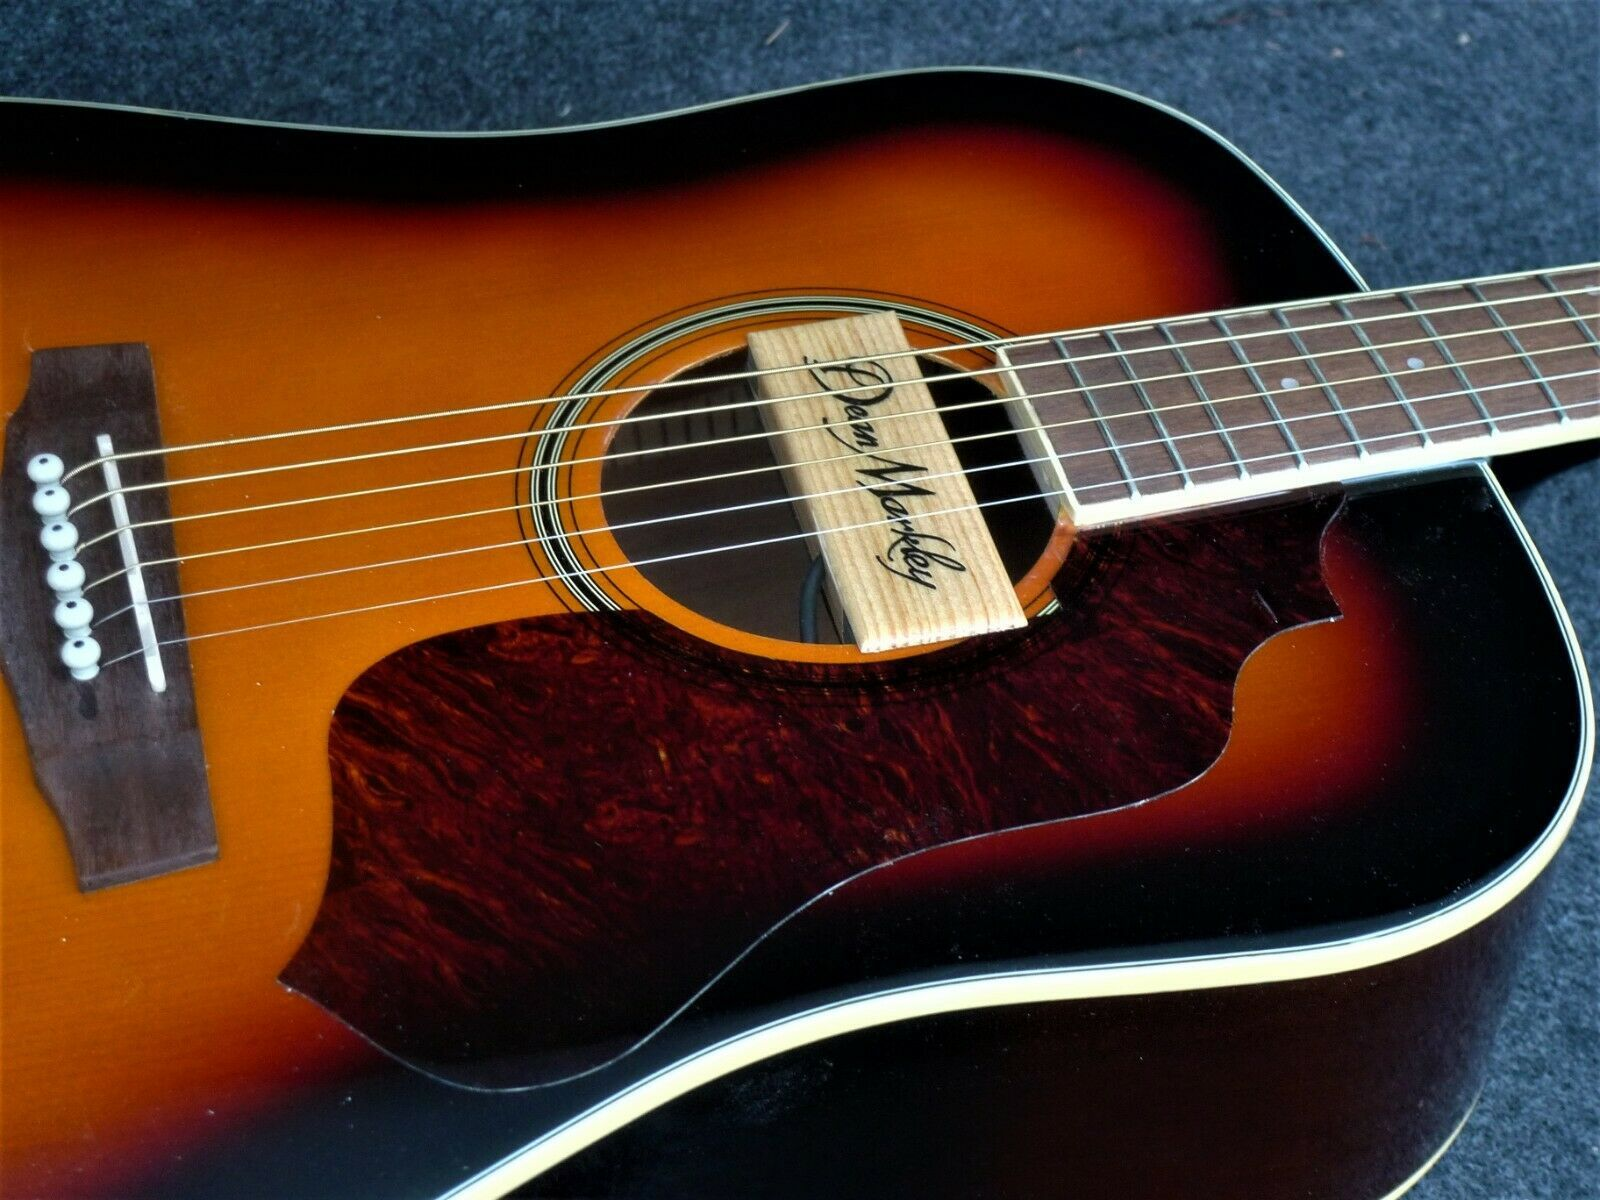 Ibanez Pf15 Vs Acoustic Guitar Custom Conversion With Dean Markley Pickup Guitar Ideas Of Guitar Guitar Acousticguitar Guitar Acoustic Guitar Ibanez